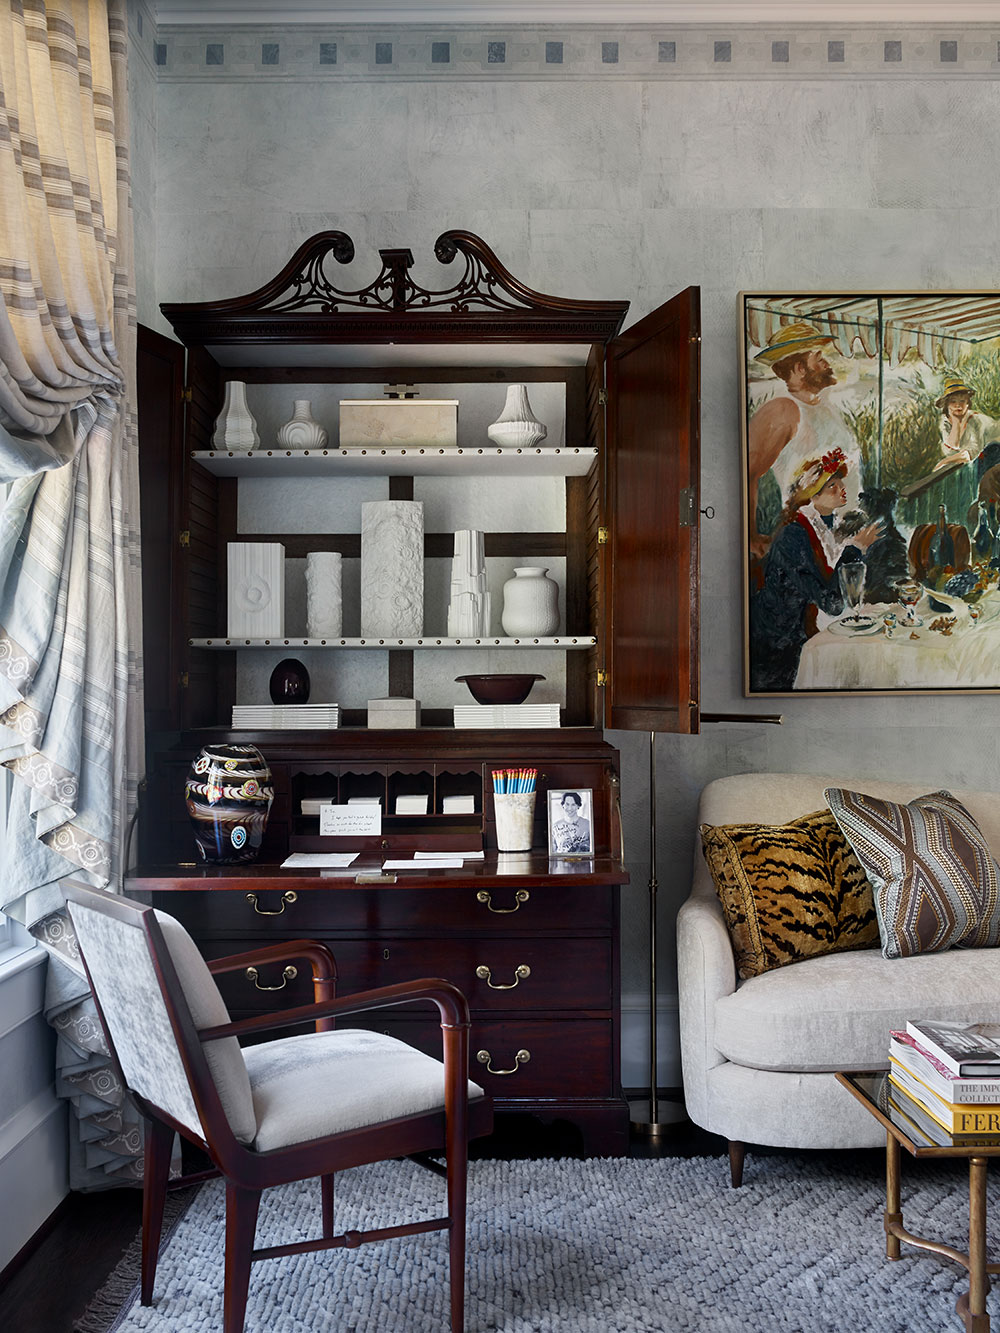 Lindsey Waters and James Michael Howard interior design